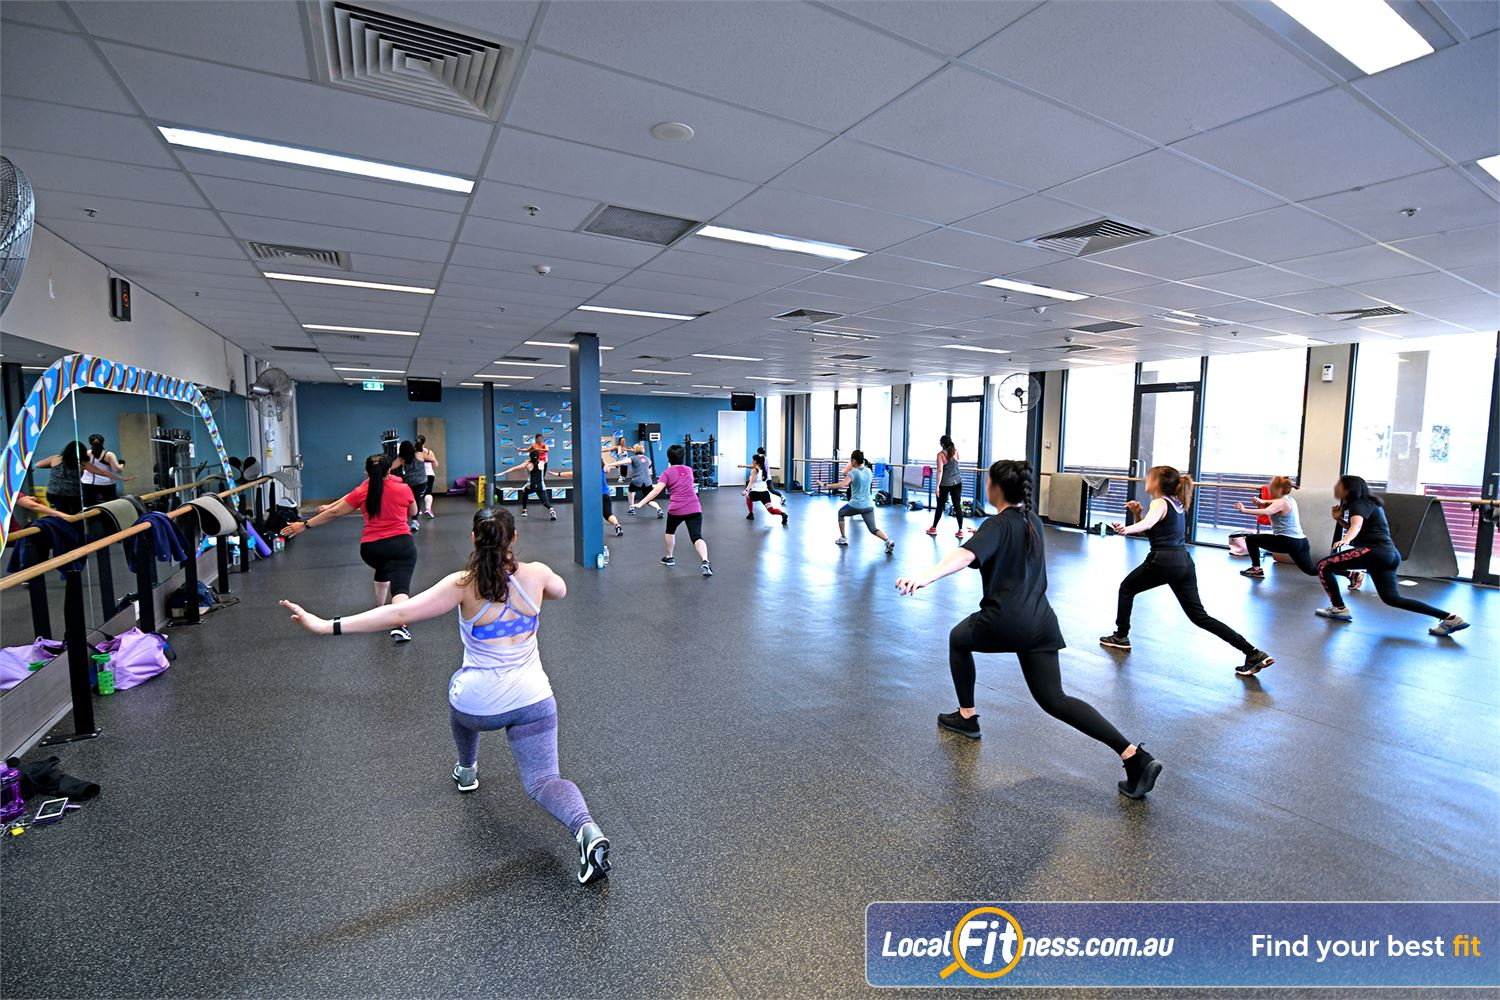 Goodlife Health Clubs Near Werribee South Enjoy Point Cook Yoga, Pilates and Zumba classes.